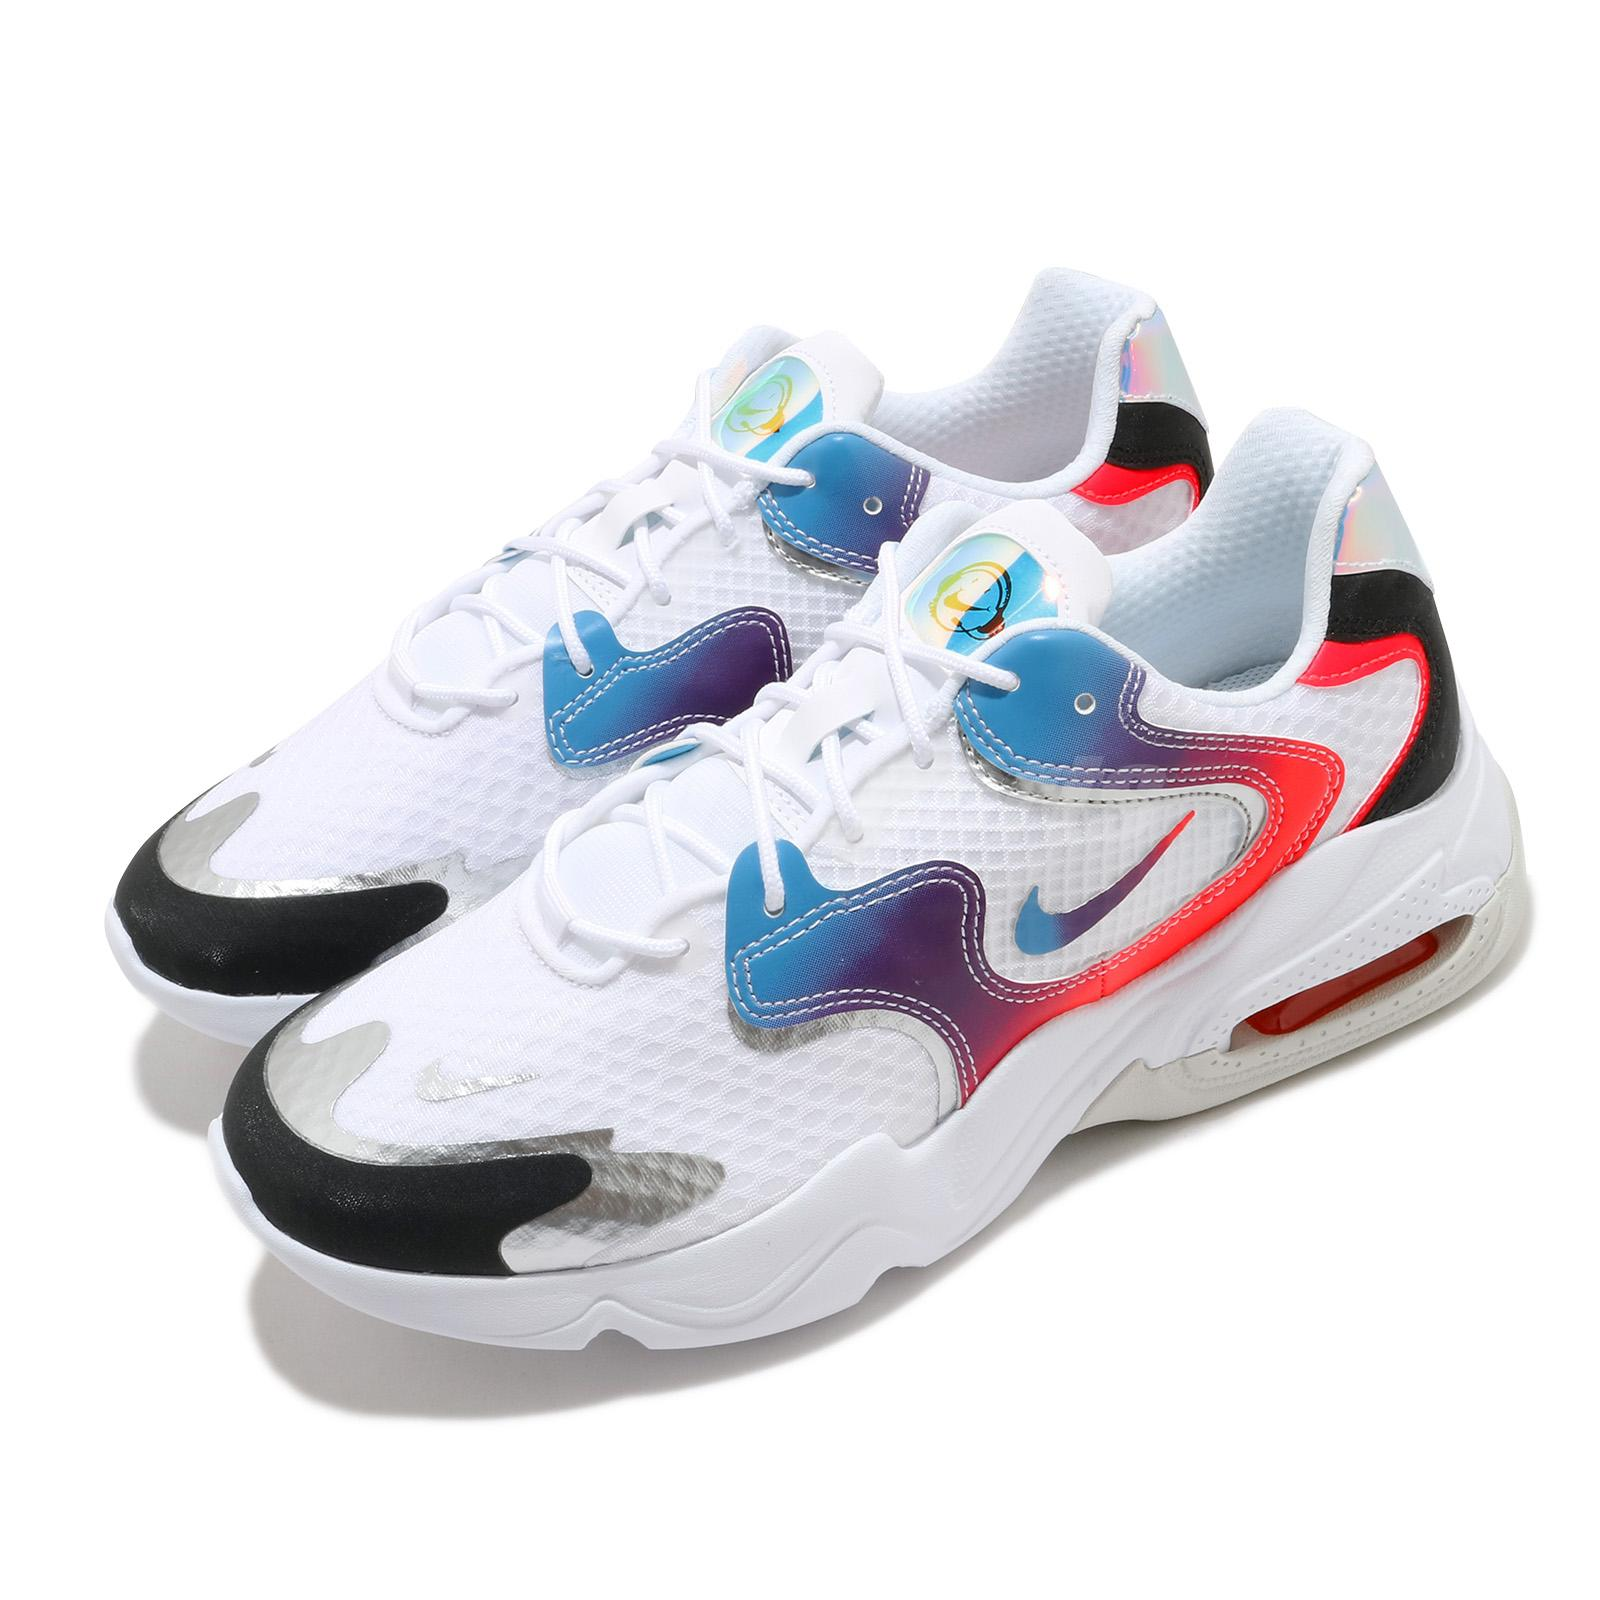 Nike Air Max 2X Have A Good Game White Multi Men Casual Shoes ...